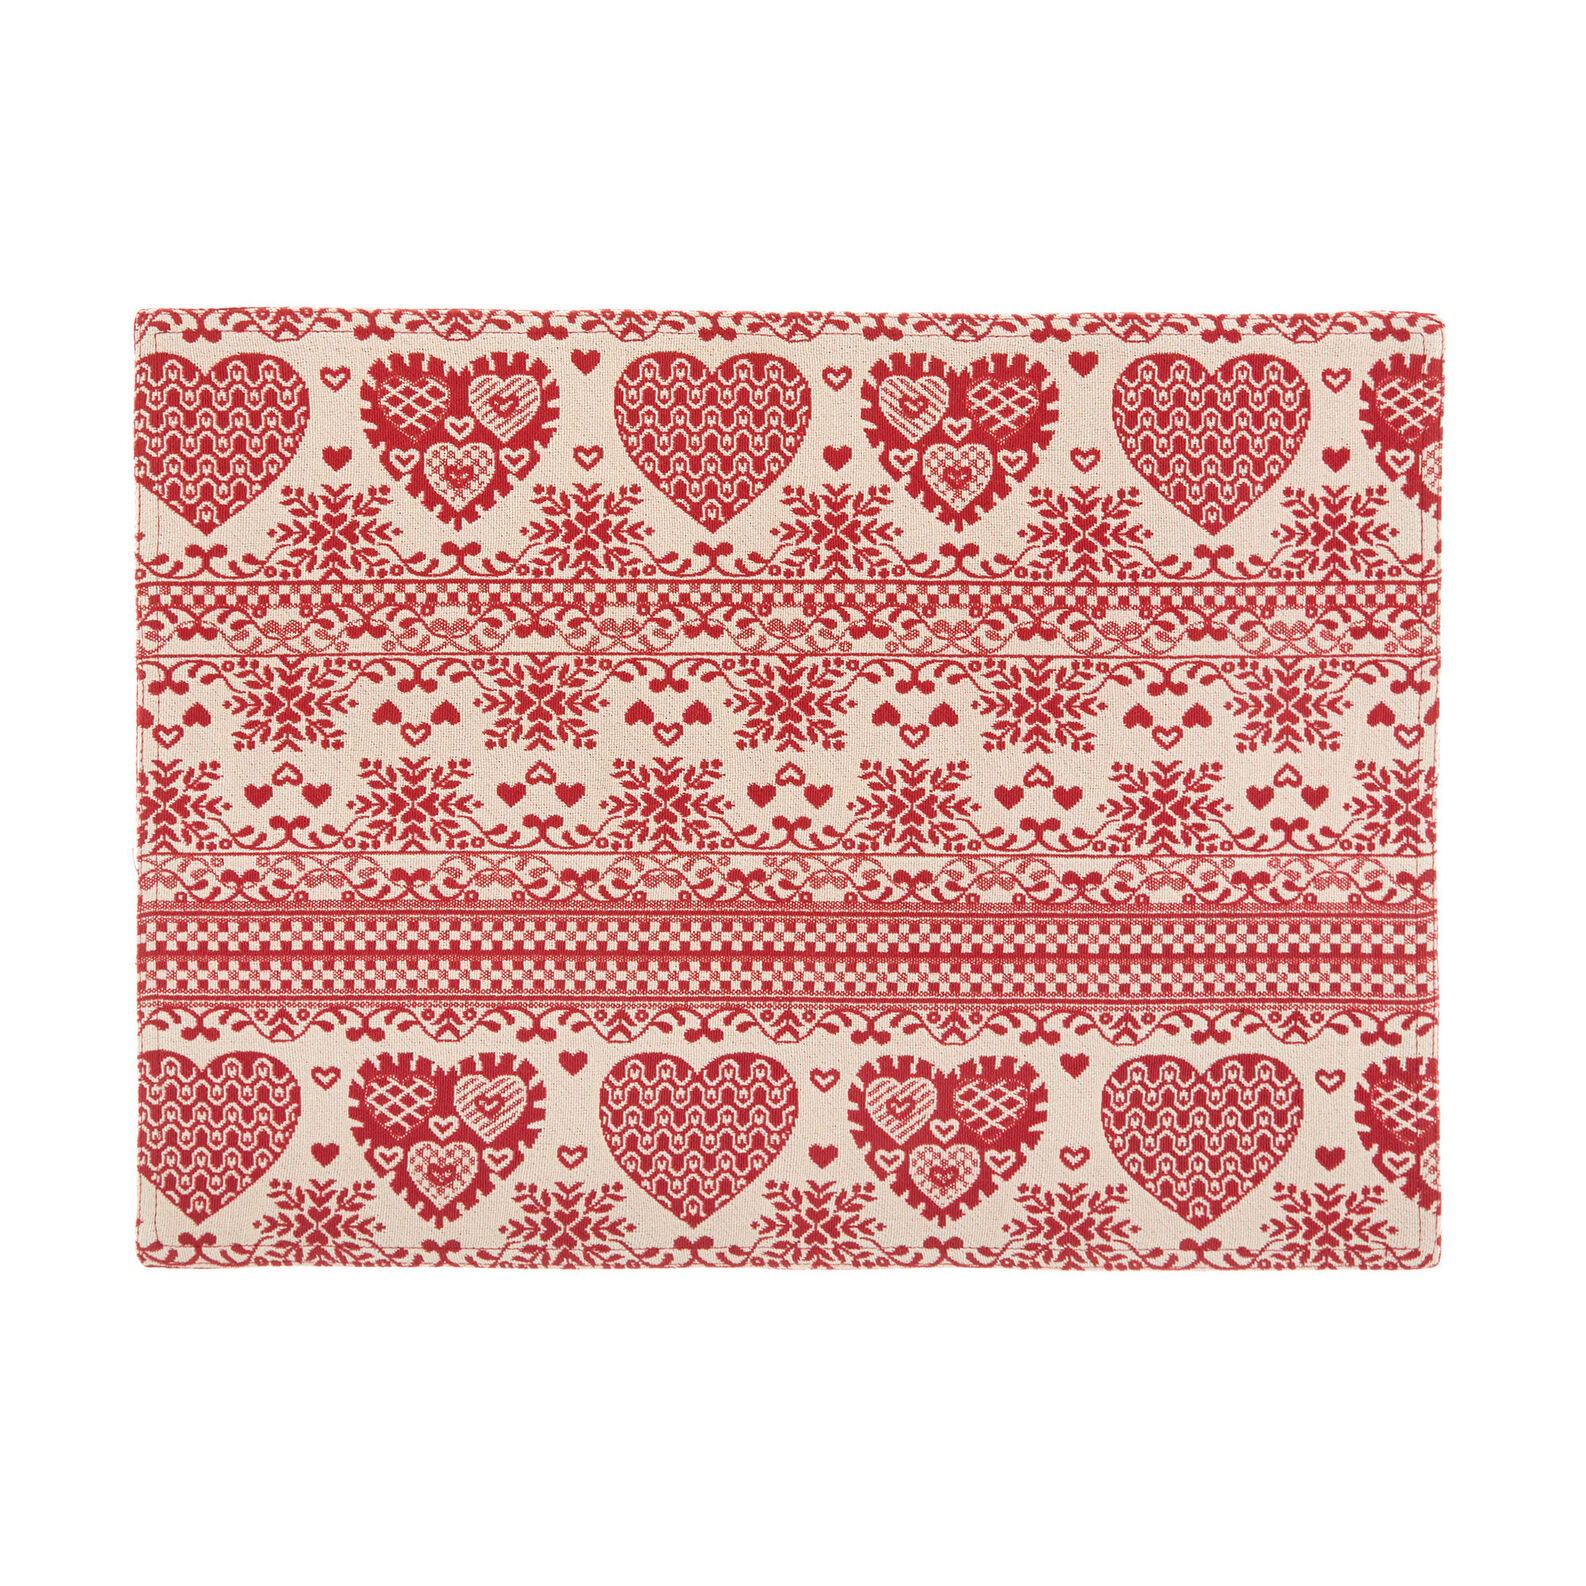 Gobelin table mat with hearts motif